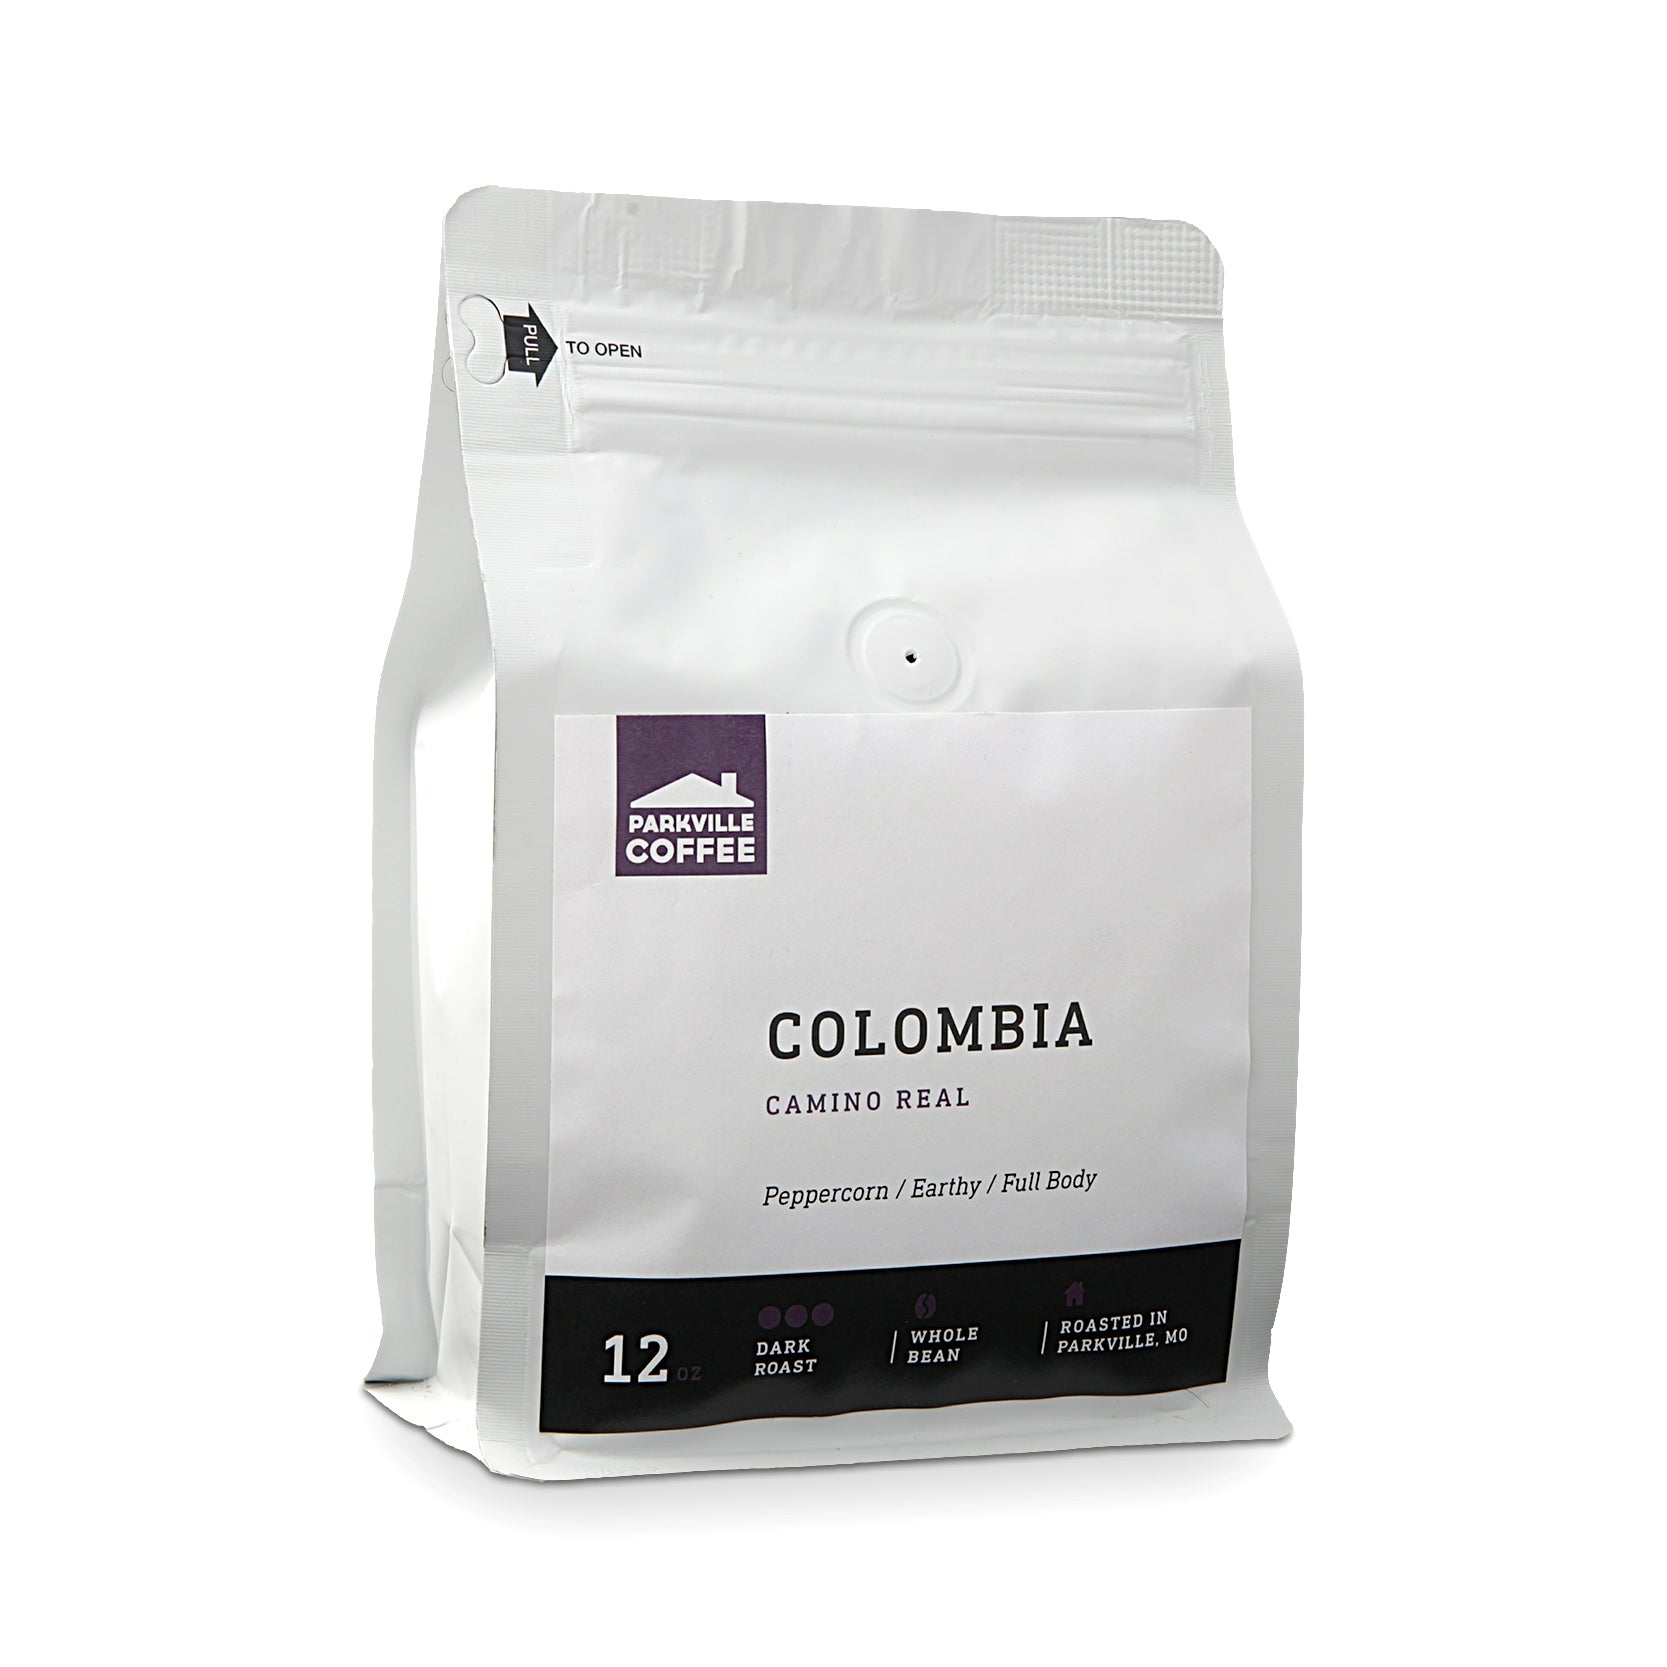 Parkville Coffee Colombia Whole Bean Coffee - 12 Oz